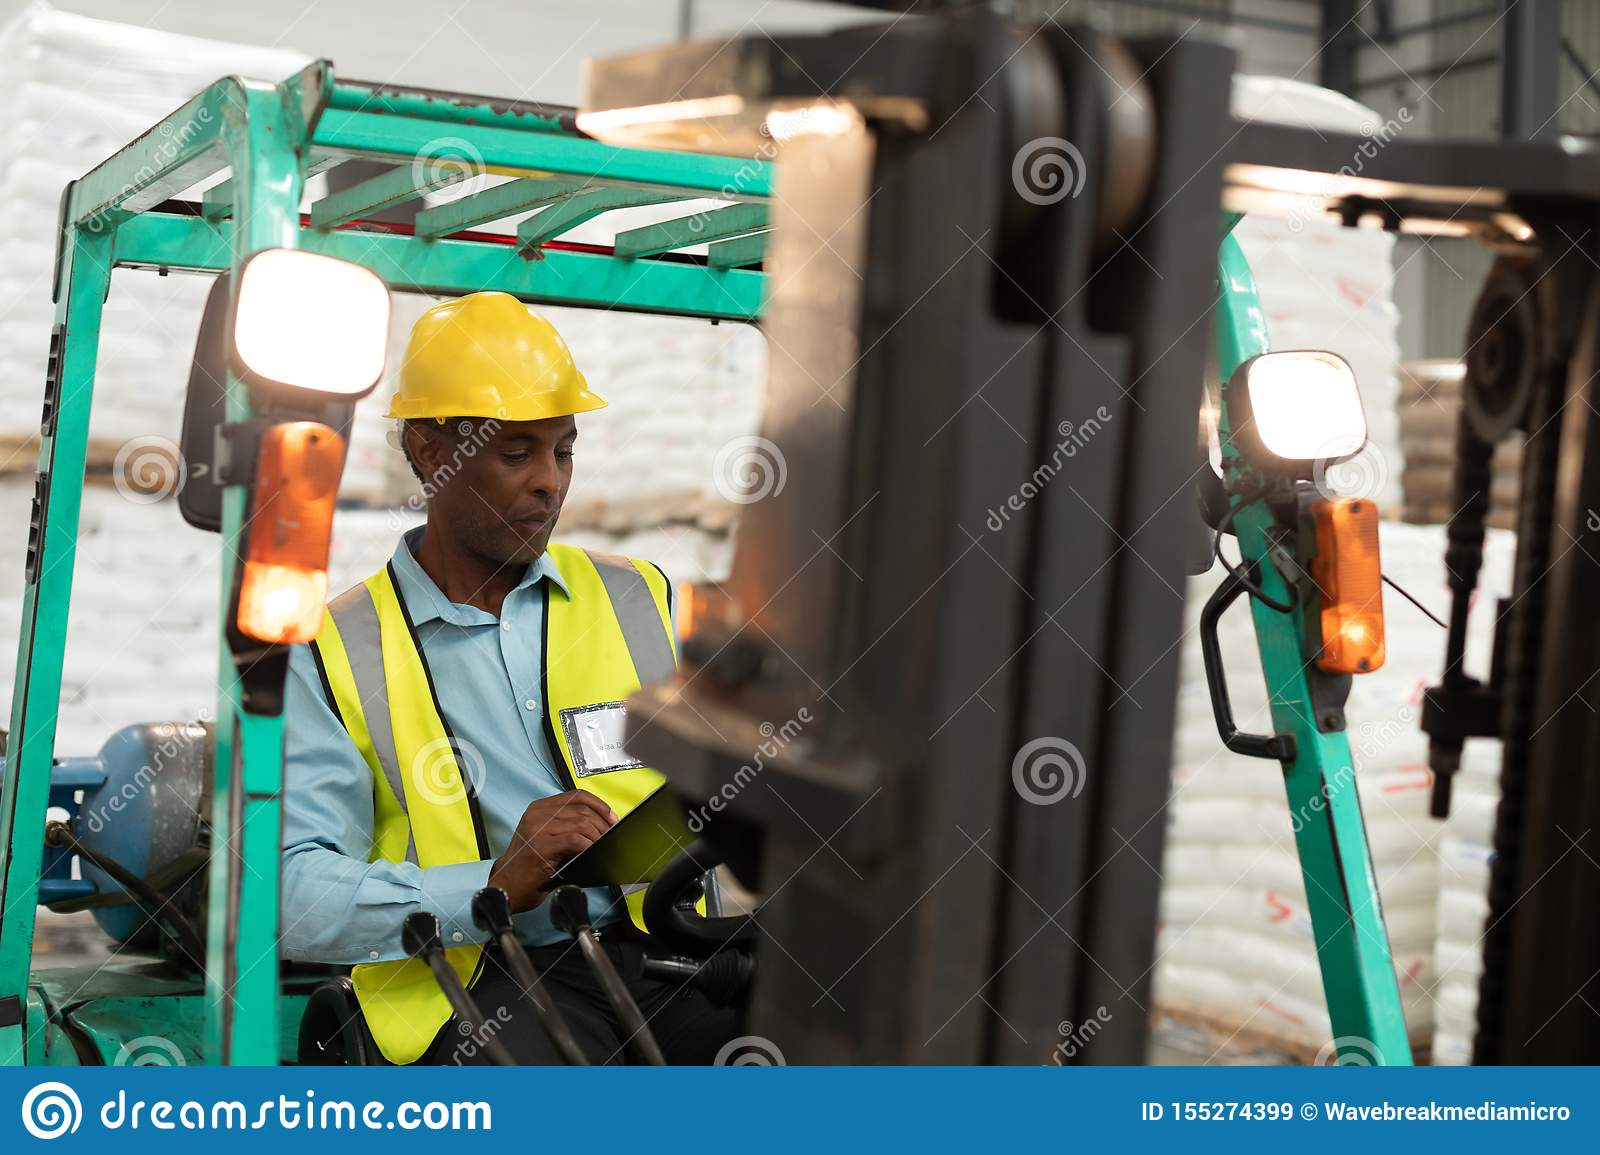 Male worker sitting in forklift and writing on clipboard in warehouse